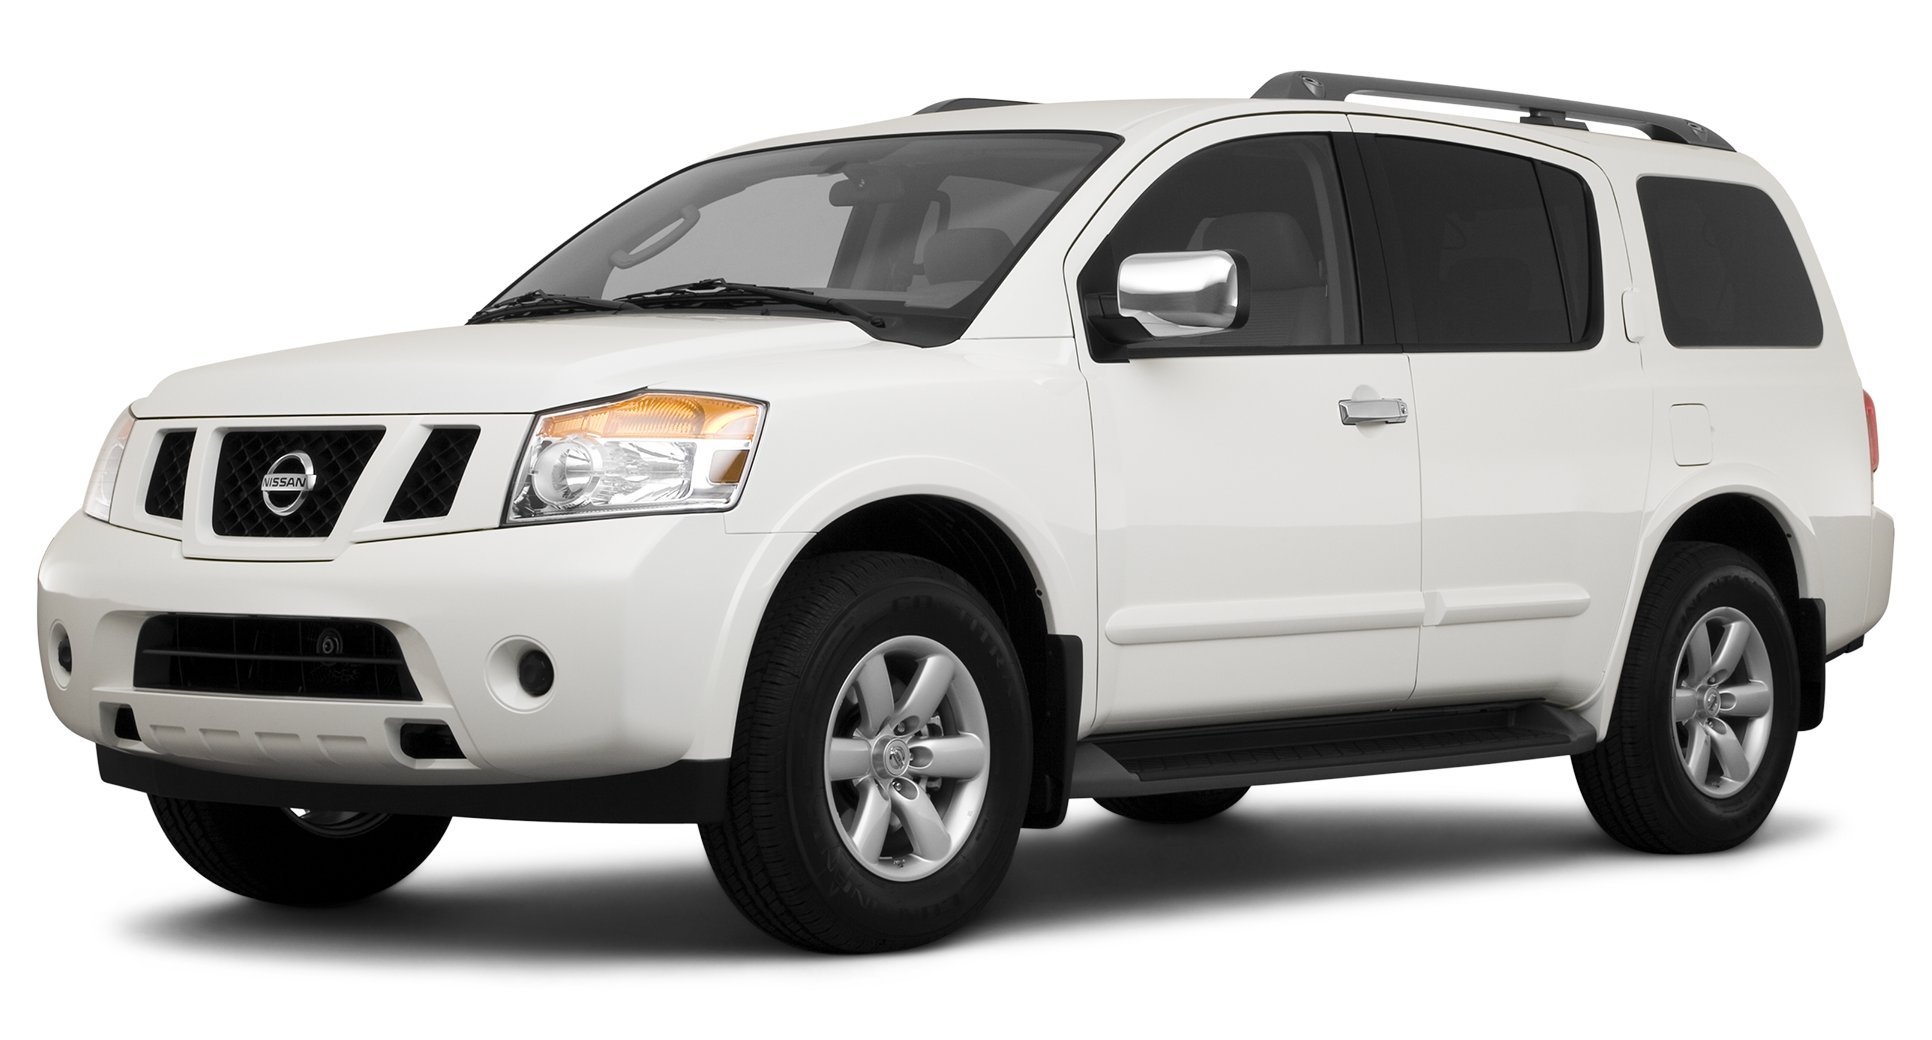 Amazon.com: 2010 Ford Expedition Reviews, Images, and Specs: Vehicles